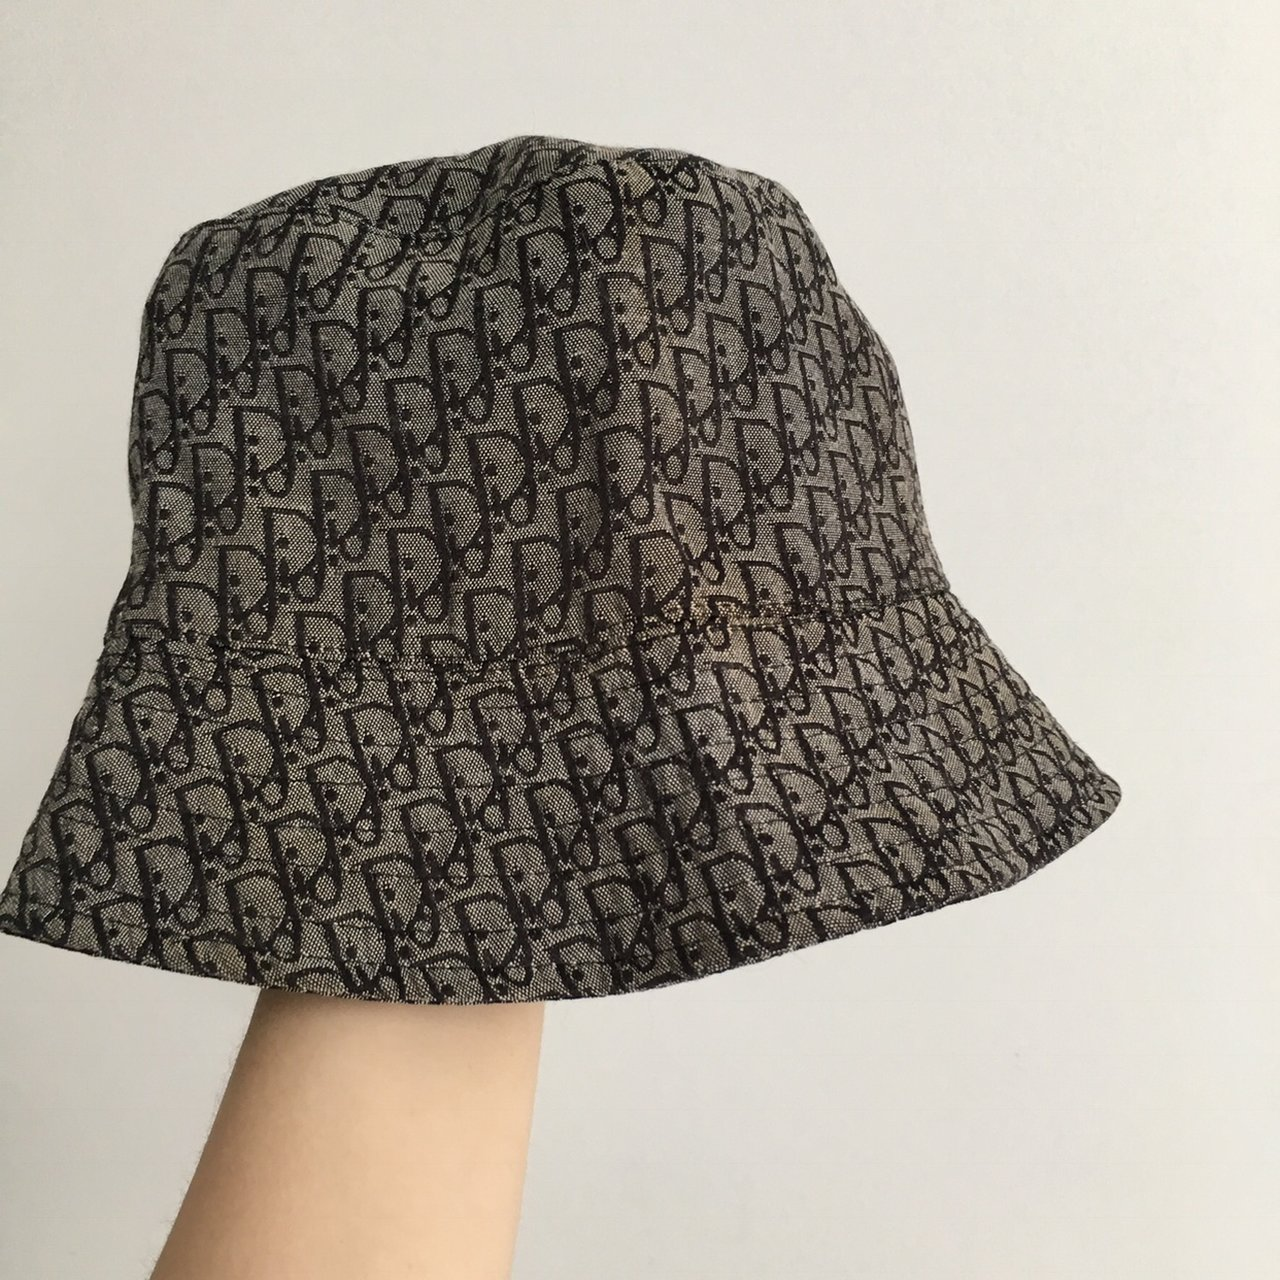 Vintage Dior monogram bucket hat in grey. 80s 90s item so on - Depop ce2f90650f3